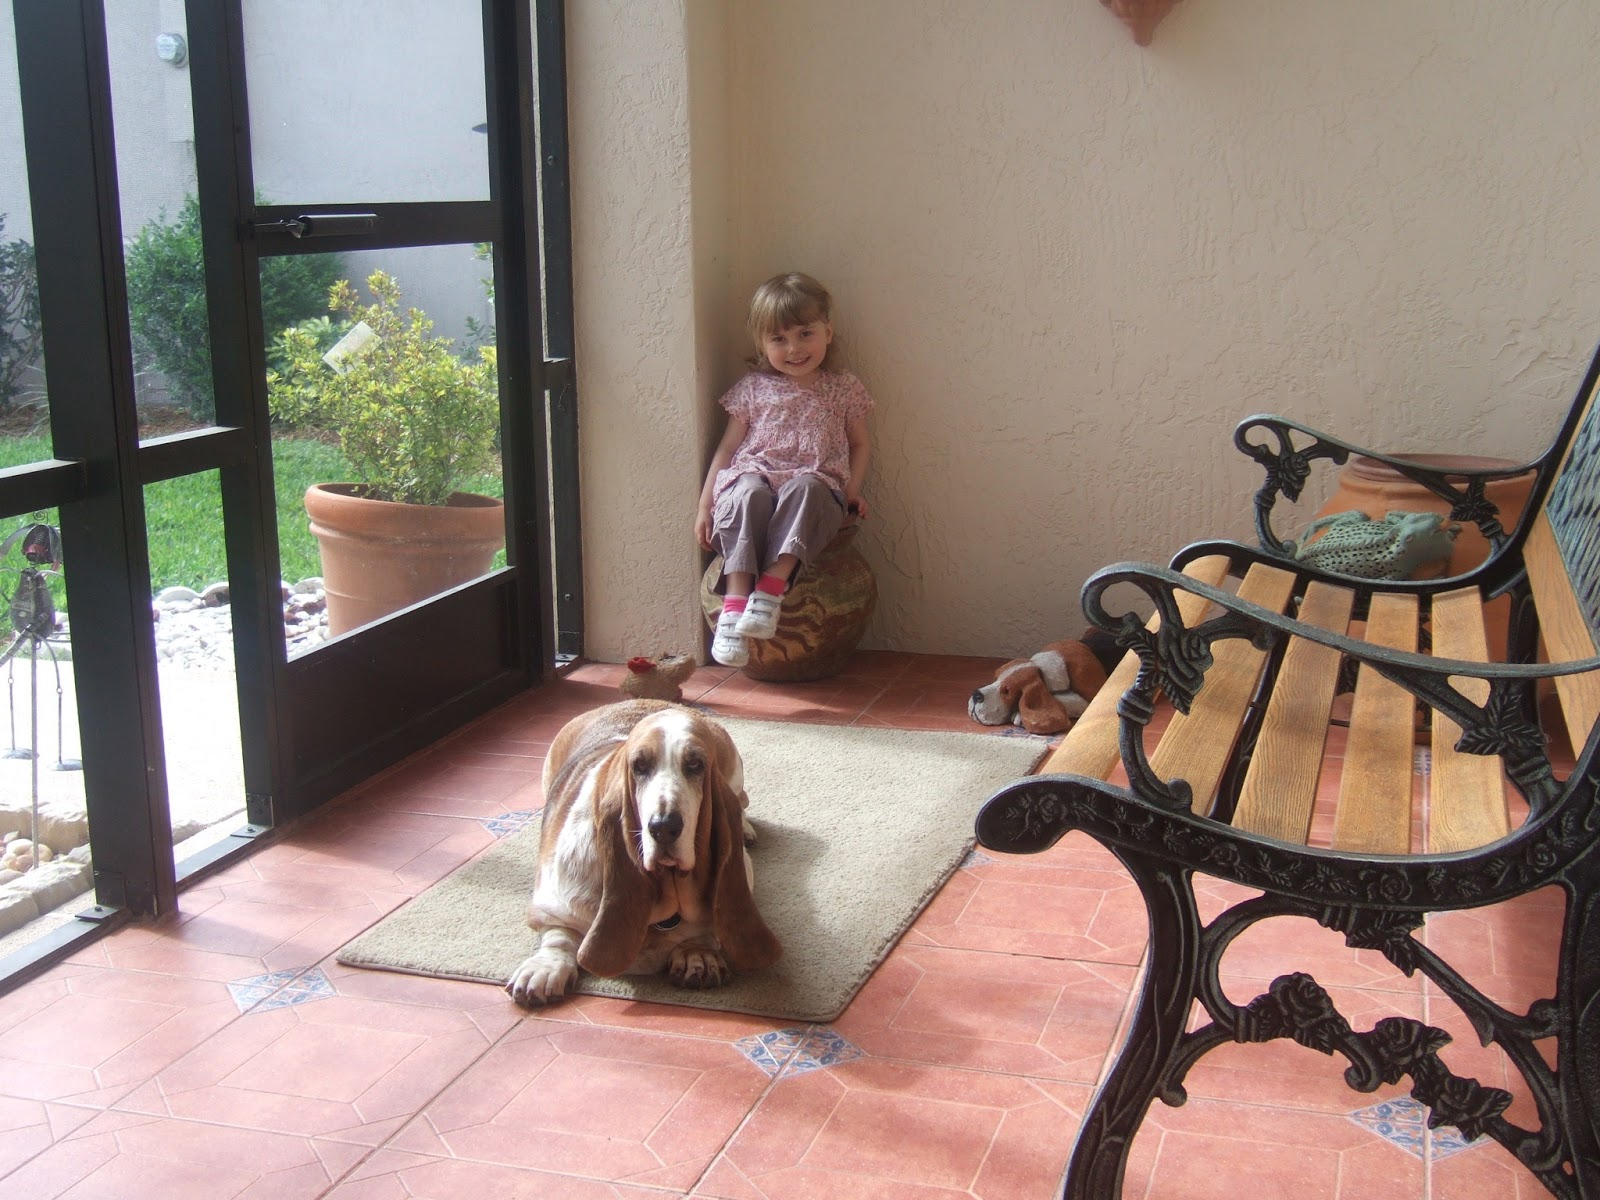 Tubblet and basset hound